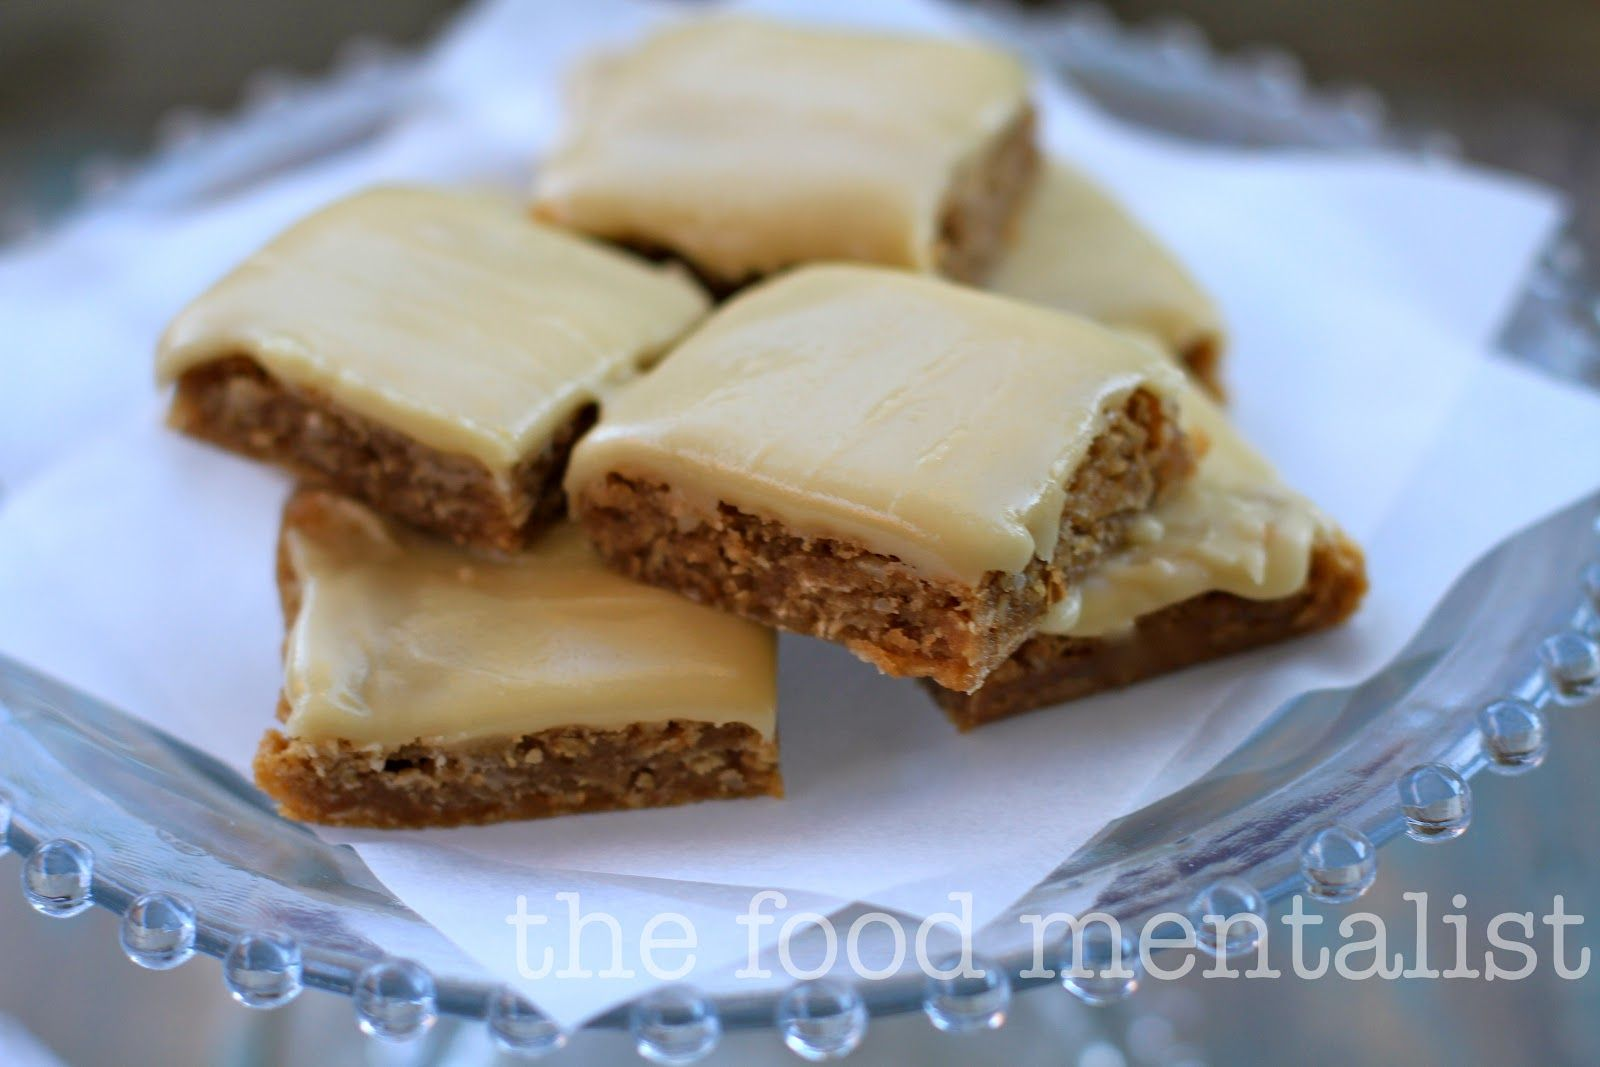 anzac day slice with icing - Google Search